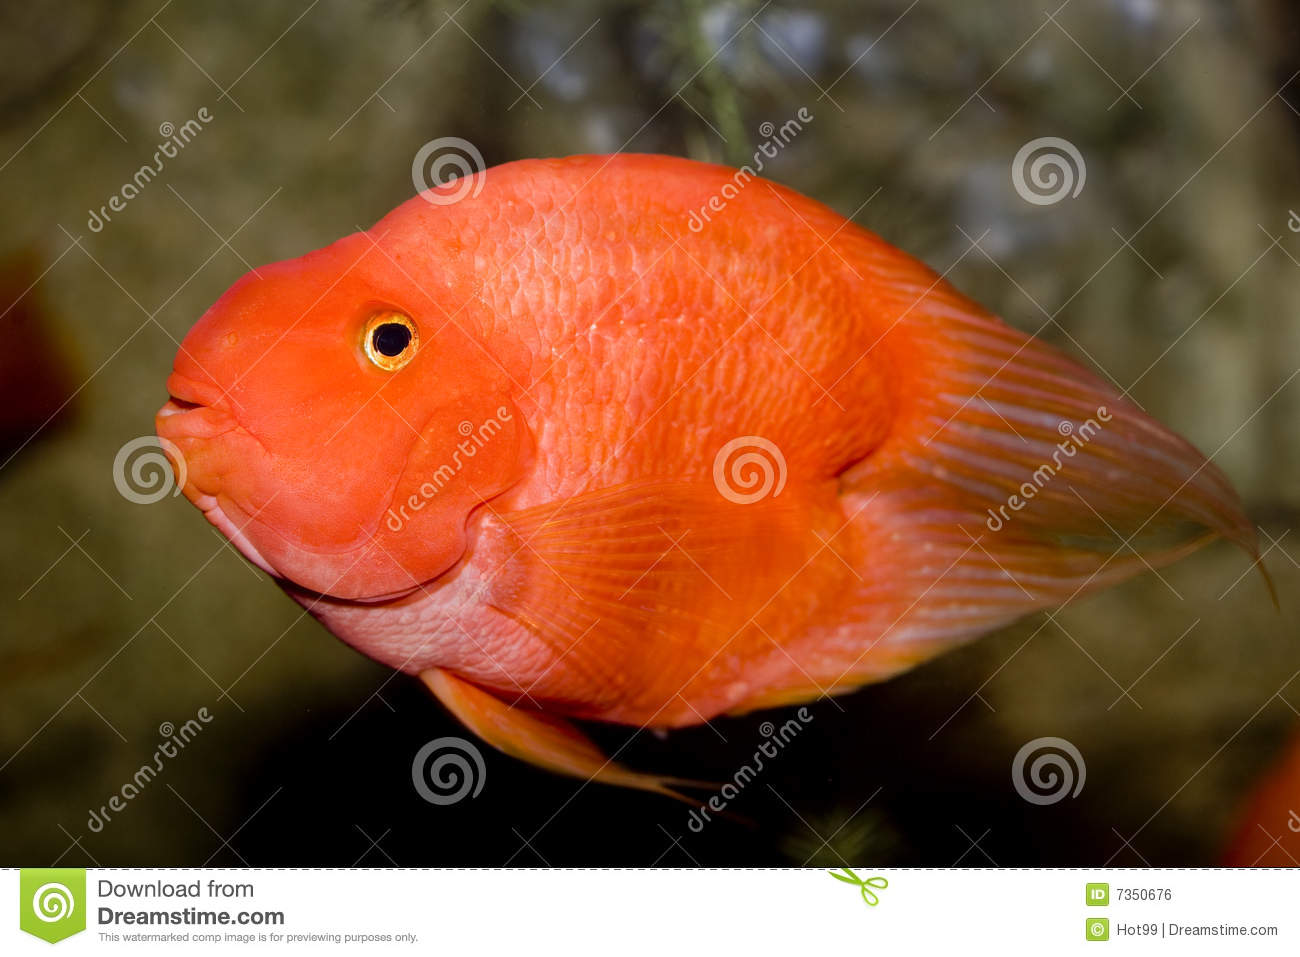 Red parrot fish stock photo image of hobby bubble eyes for Parrot fish freshwater